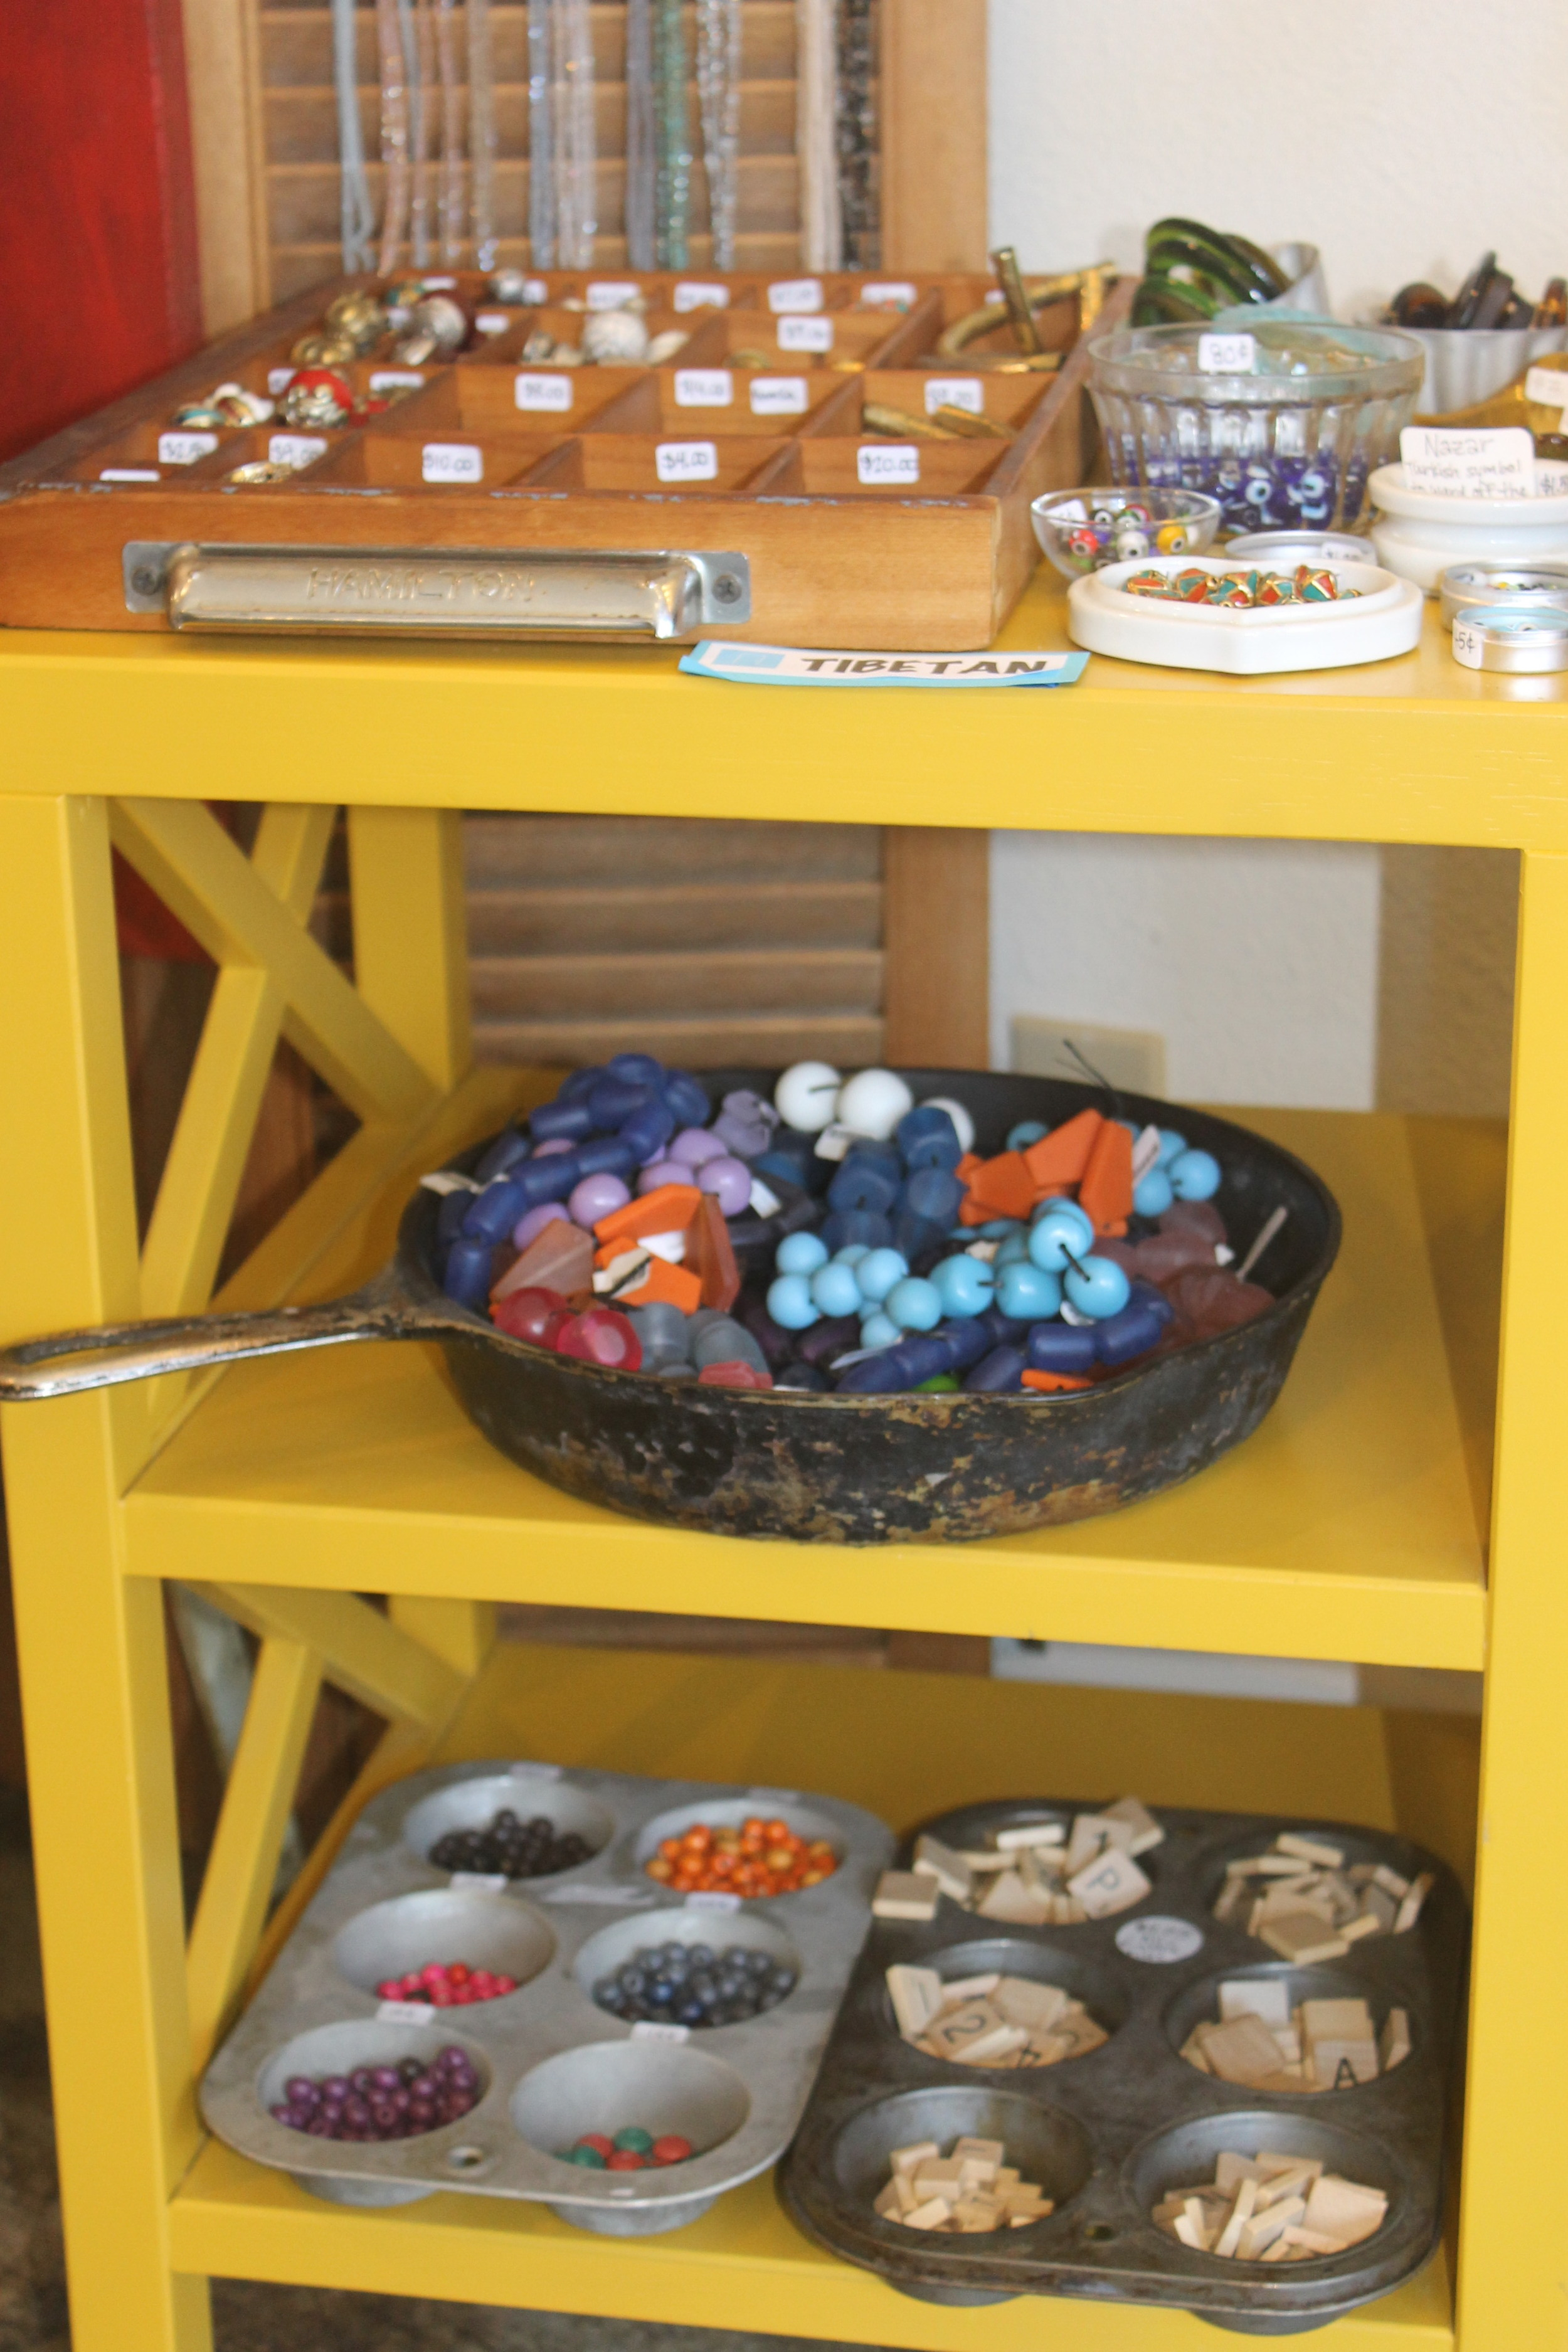 Blue Door Beads cleverly uses kitchen supplies as props to merchandise their product